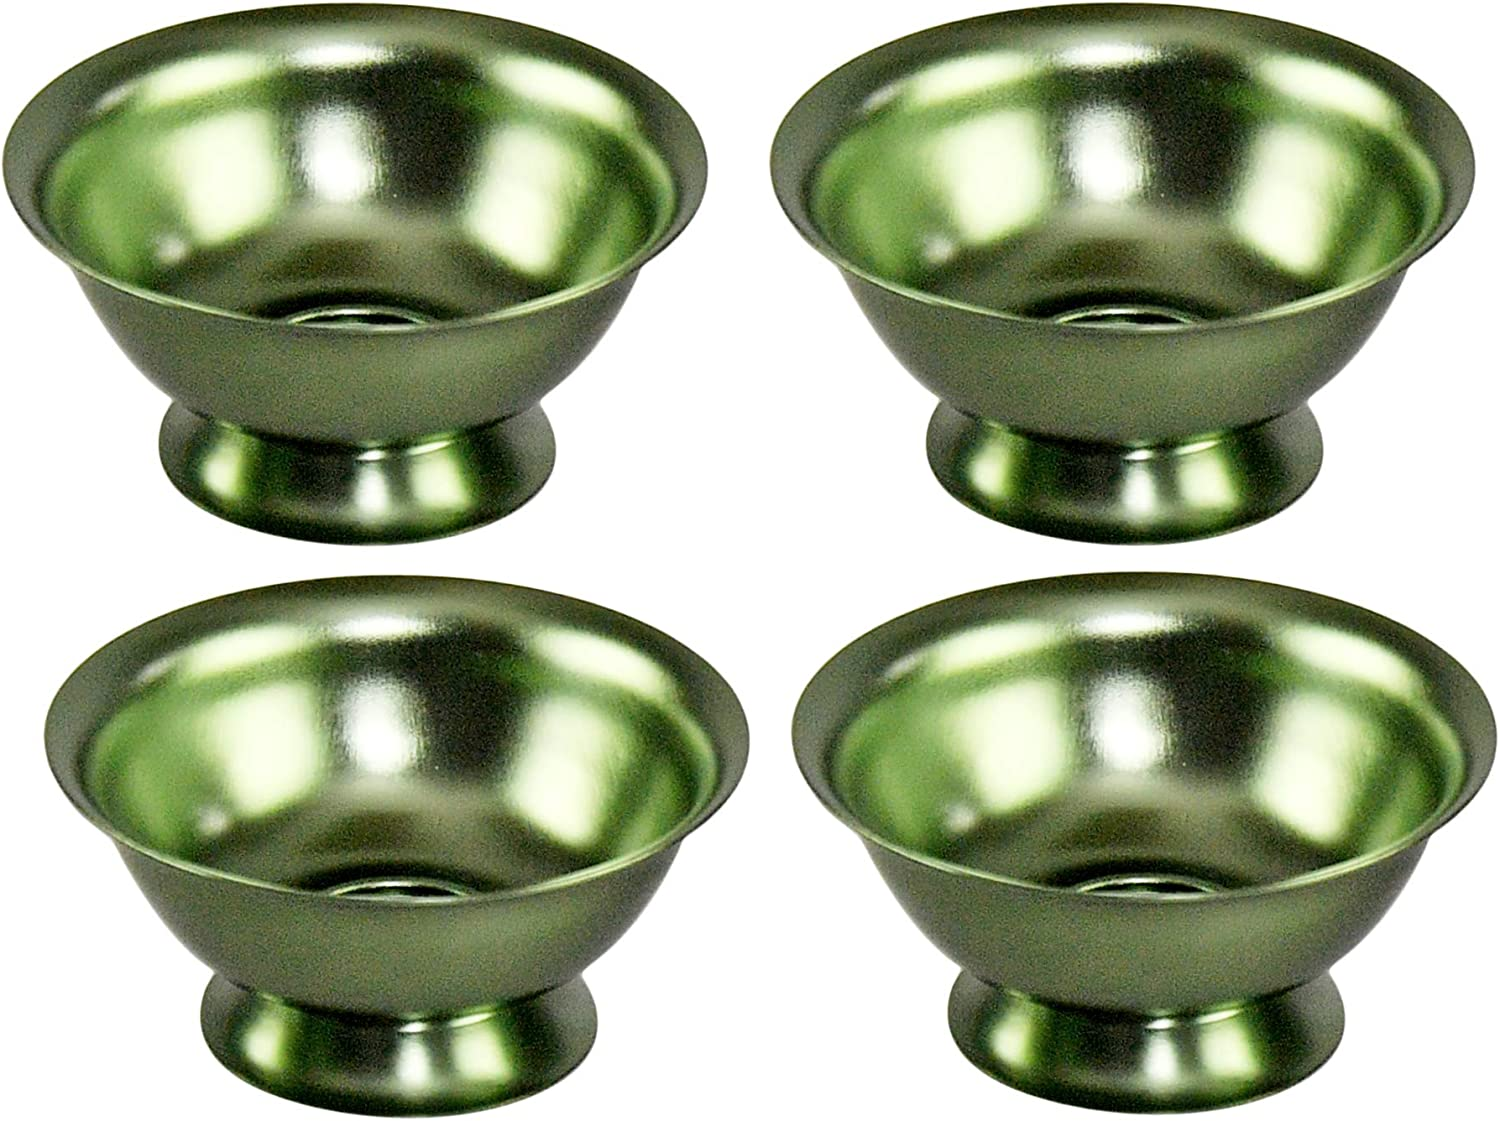 "HOME-X Green Aluminum Bowls, Serving Dishes, Colorful Food Prep Bowls, Nesting Storage Set of 4 – 4 ½"" D x 2"" H"